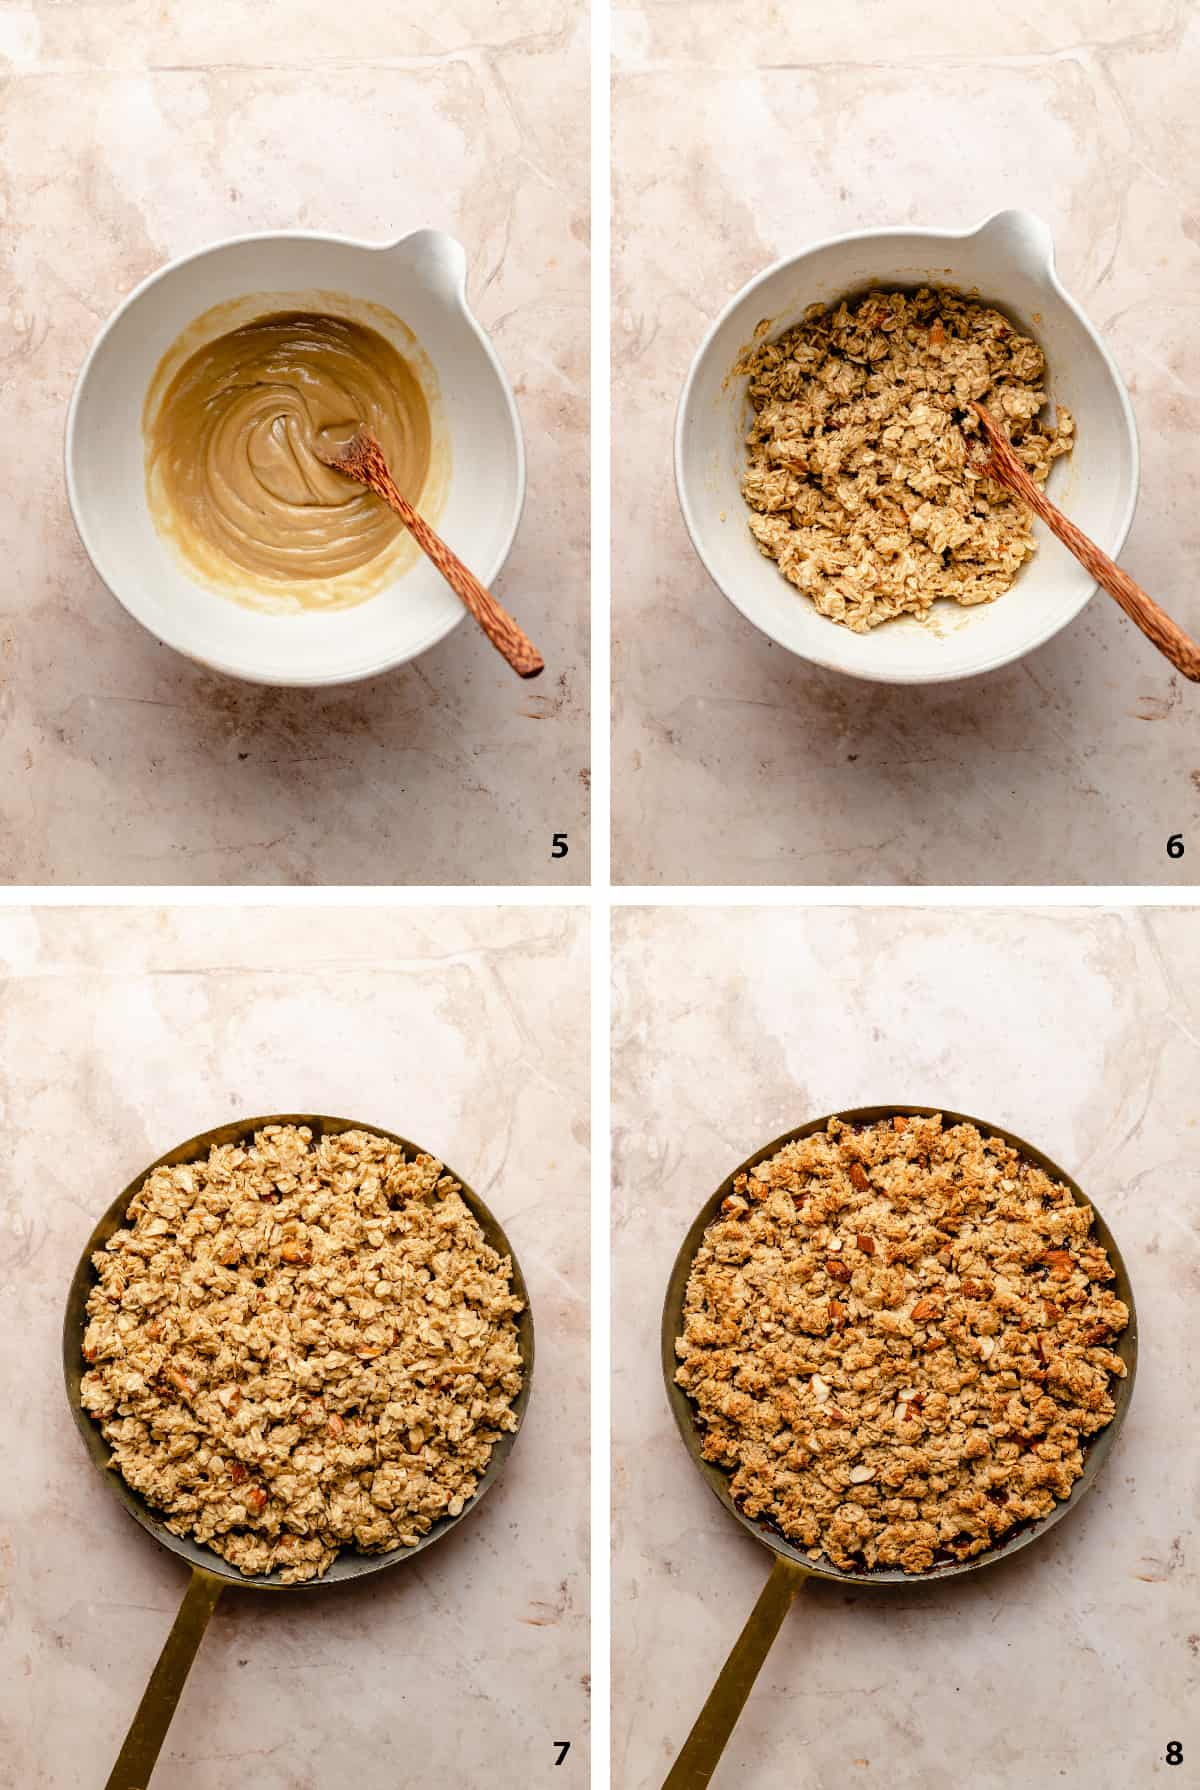 Process steps of making the oat and almond crumble topping, assembling the crumble and baked.